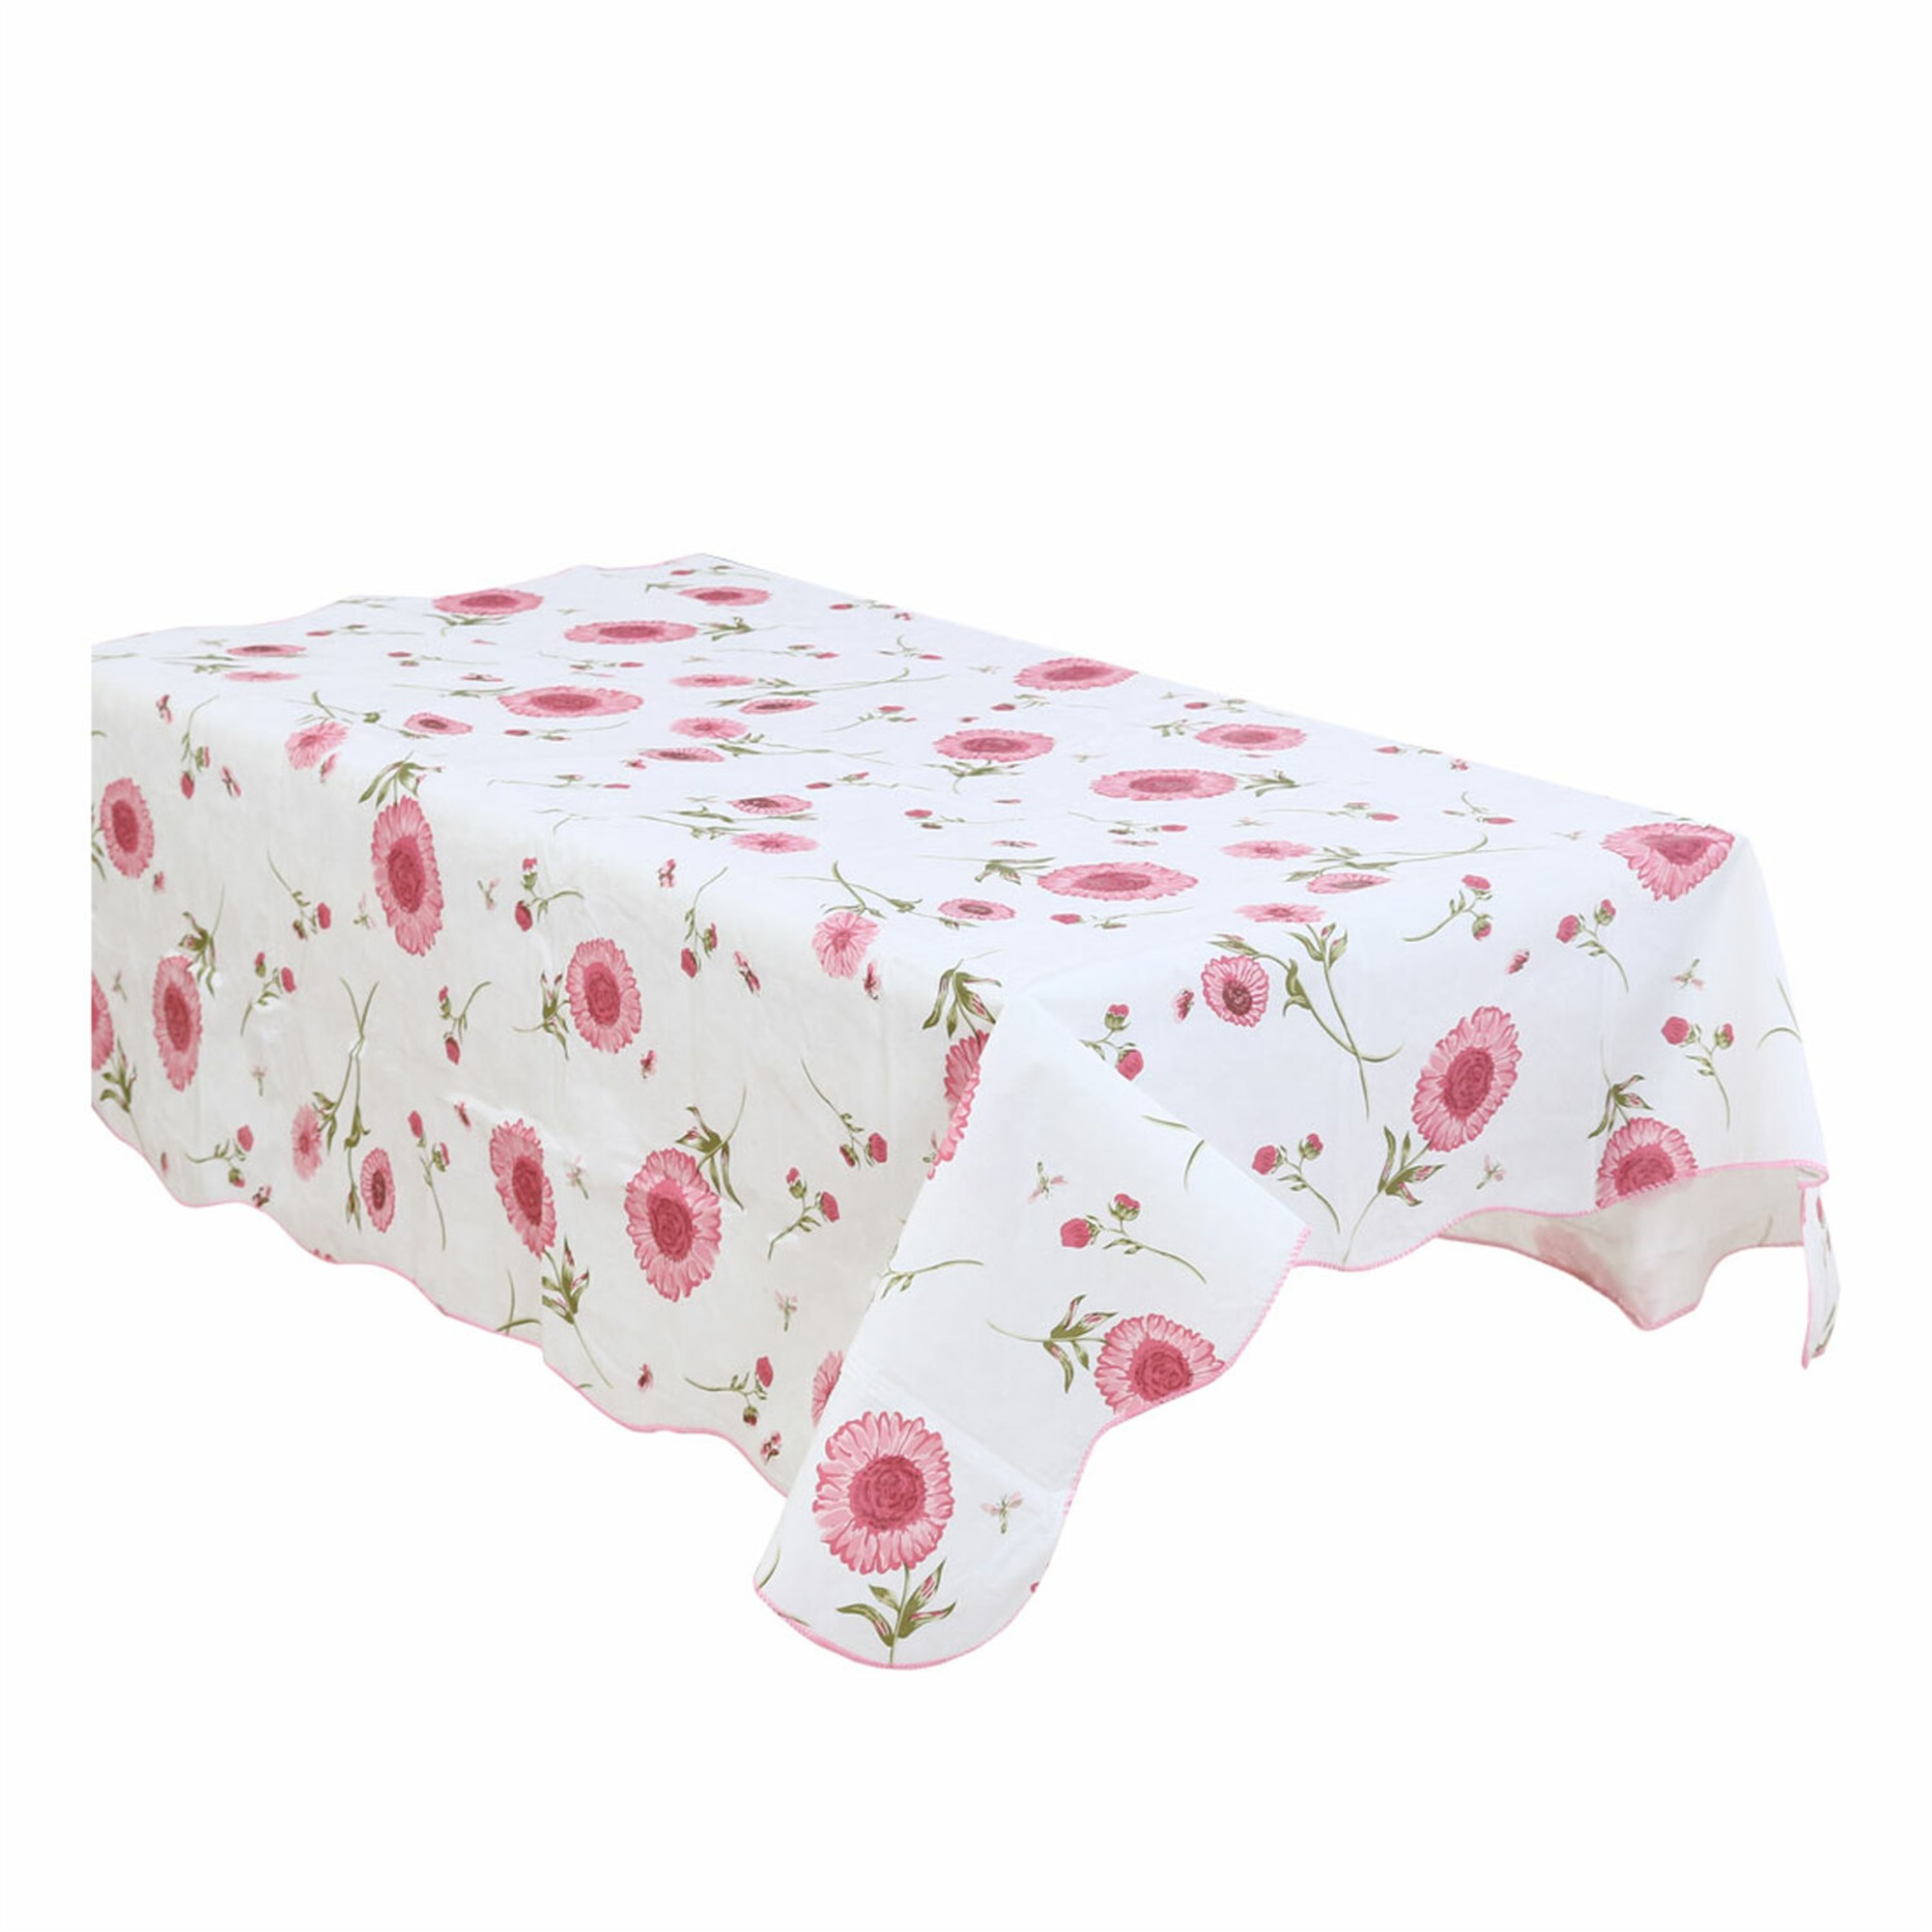 Home Picnic Sunflower Pattern Water Resistant Oil-proof Tablecloth Table Cloth Cover Pink 41 x 60 Inch